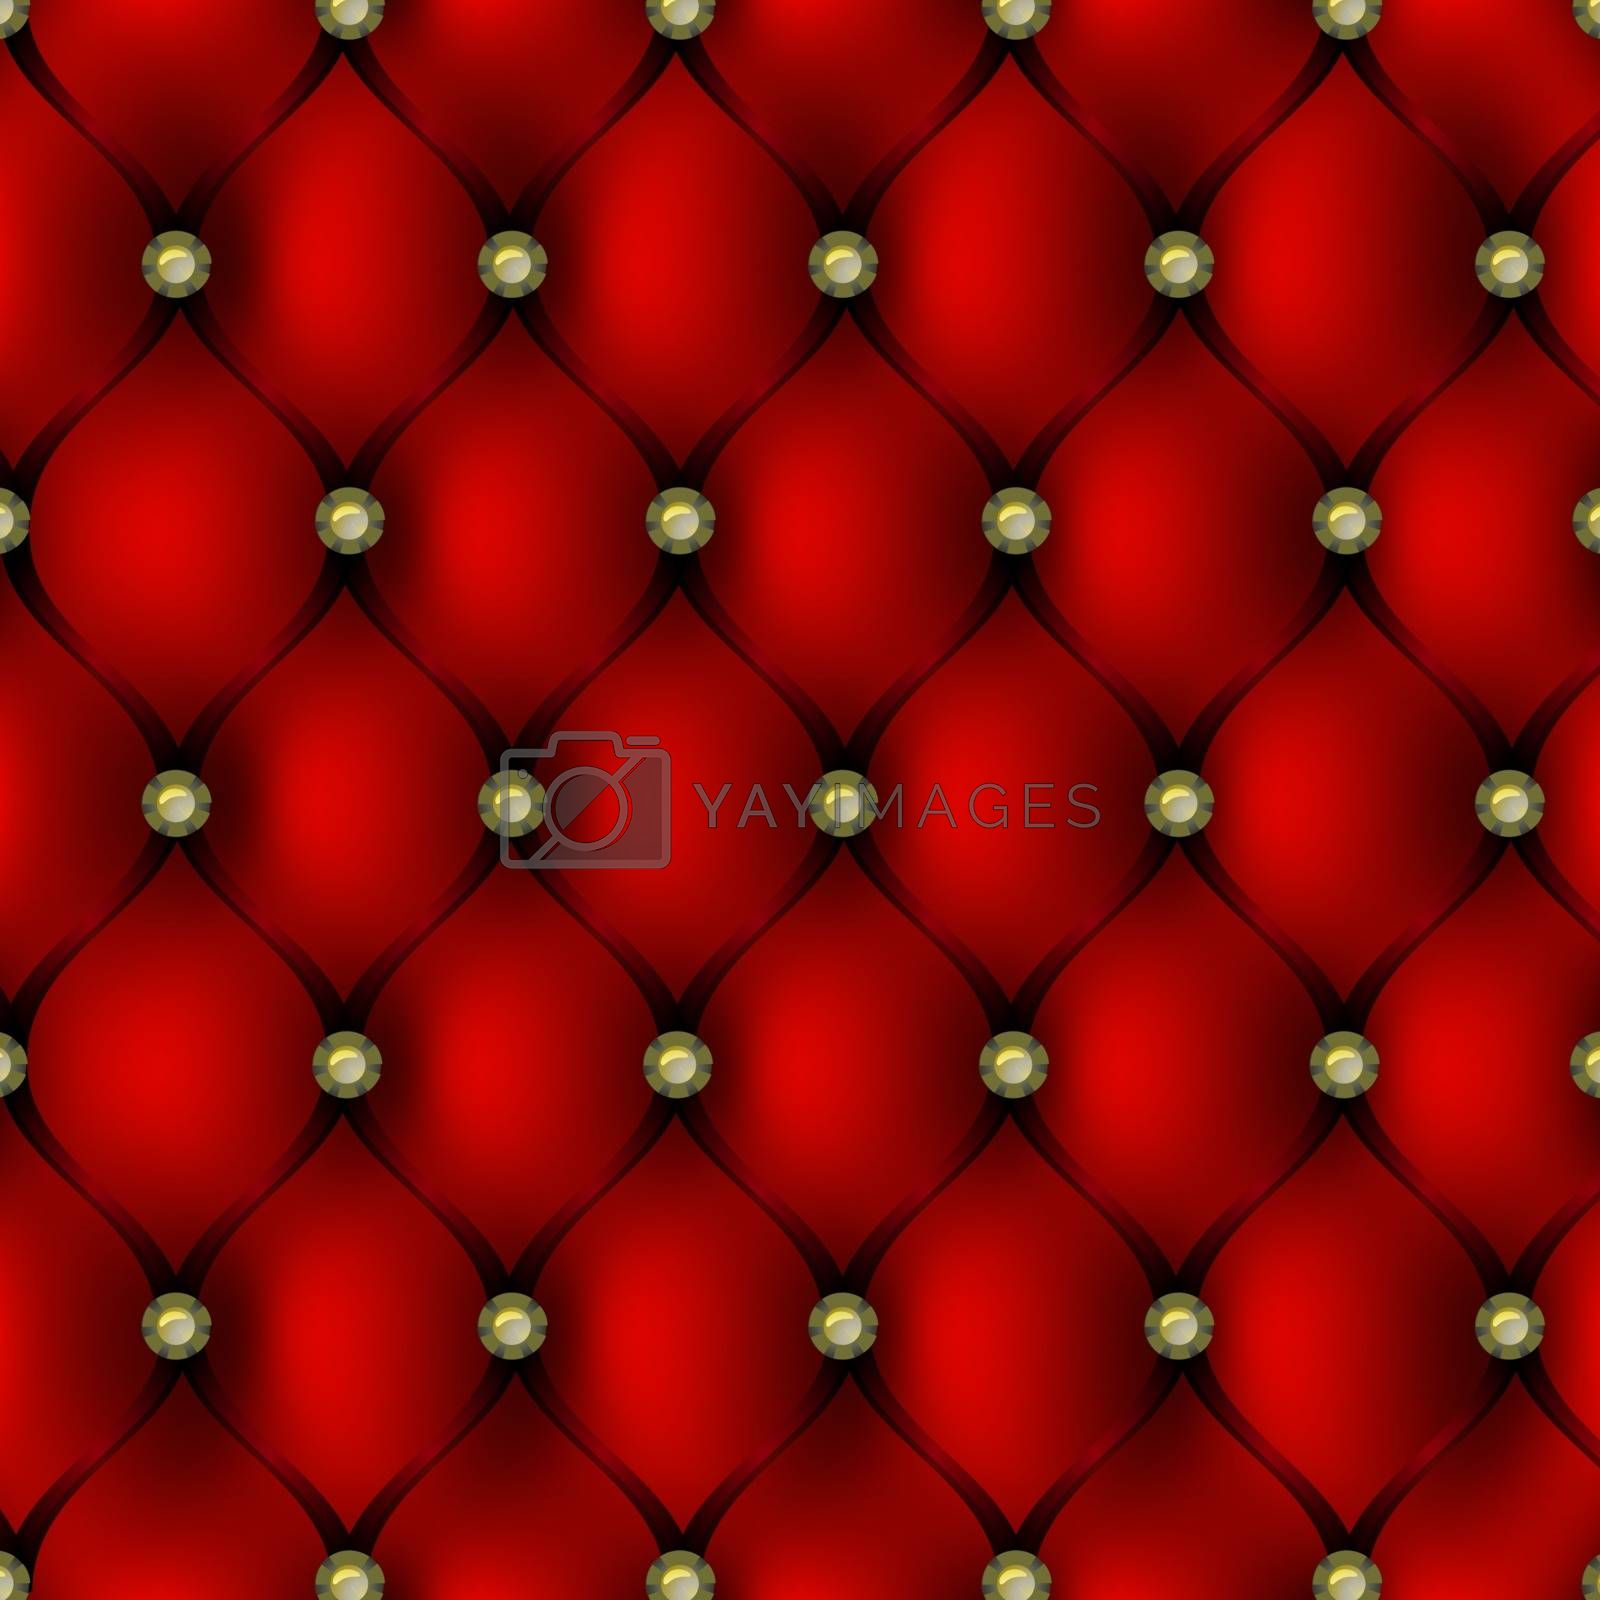 Red leather upholstery with gold button pattern background, vector illustration